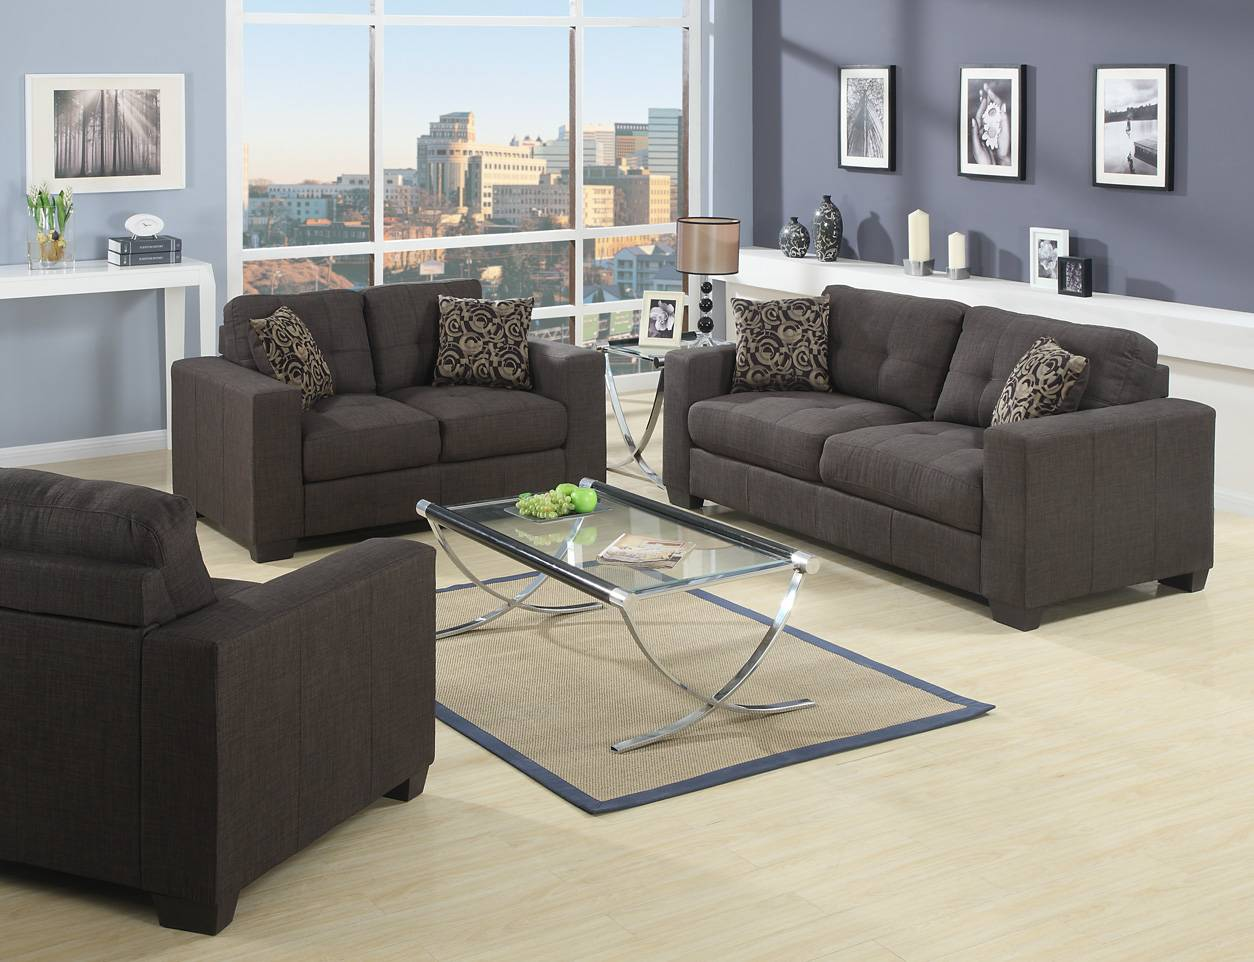 Good quality furniture sofa set designs and prices ok919071